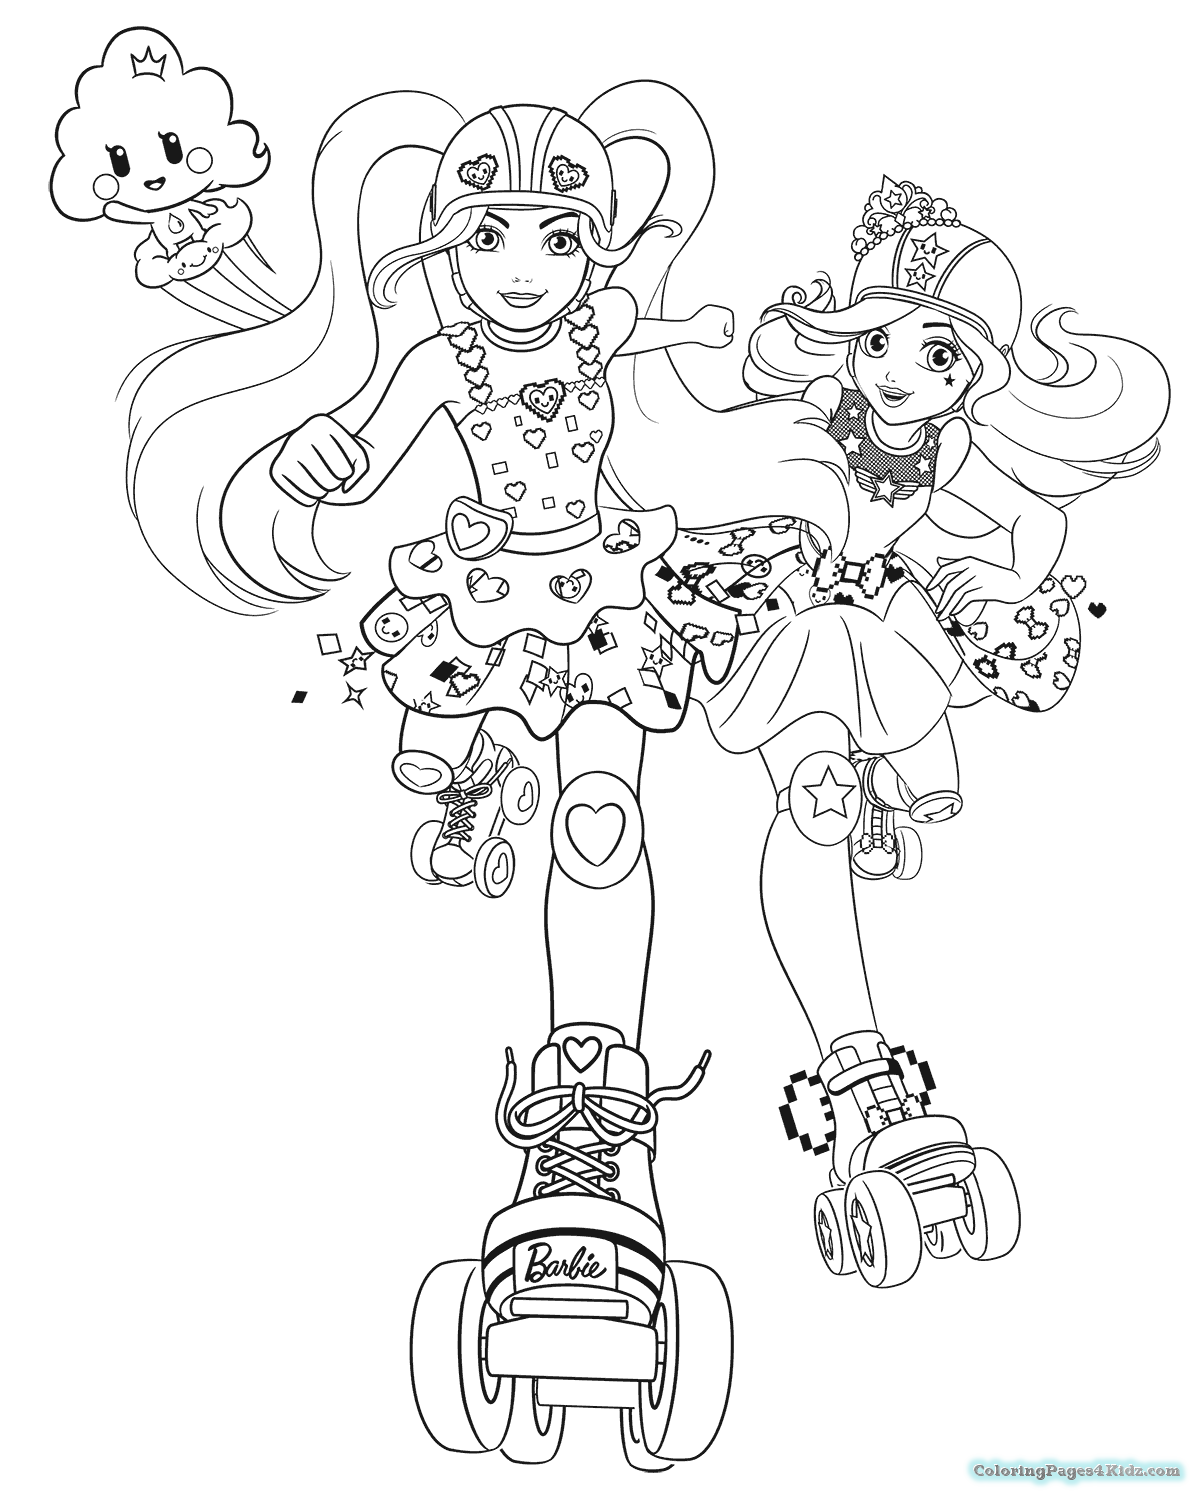 barbie pictures to color games barbie video game hero coloring pages getcoloringpagescom games pictures to color barbie